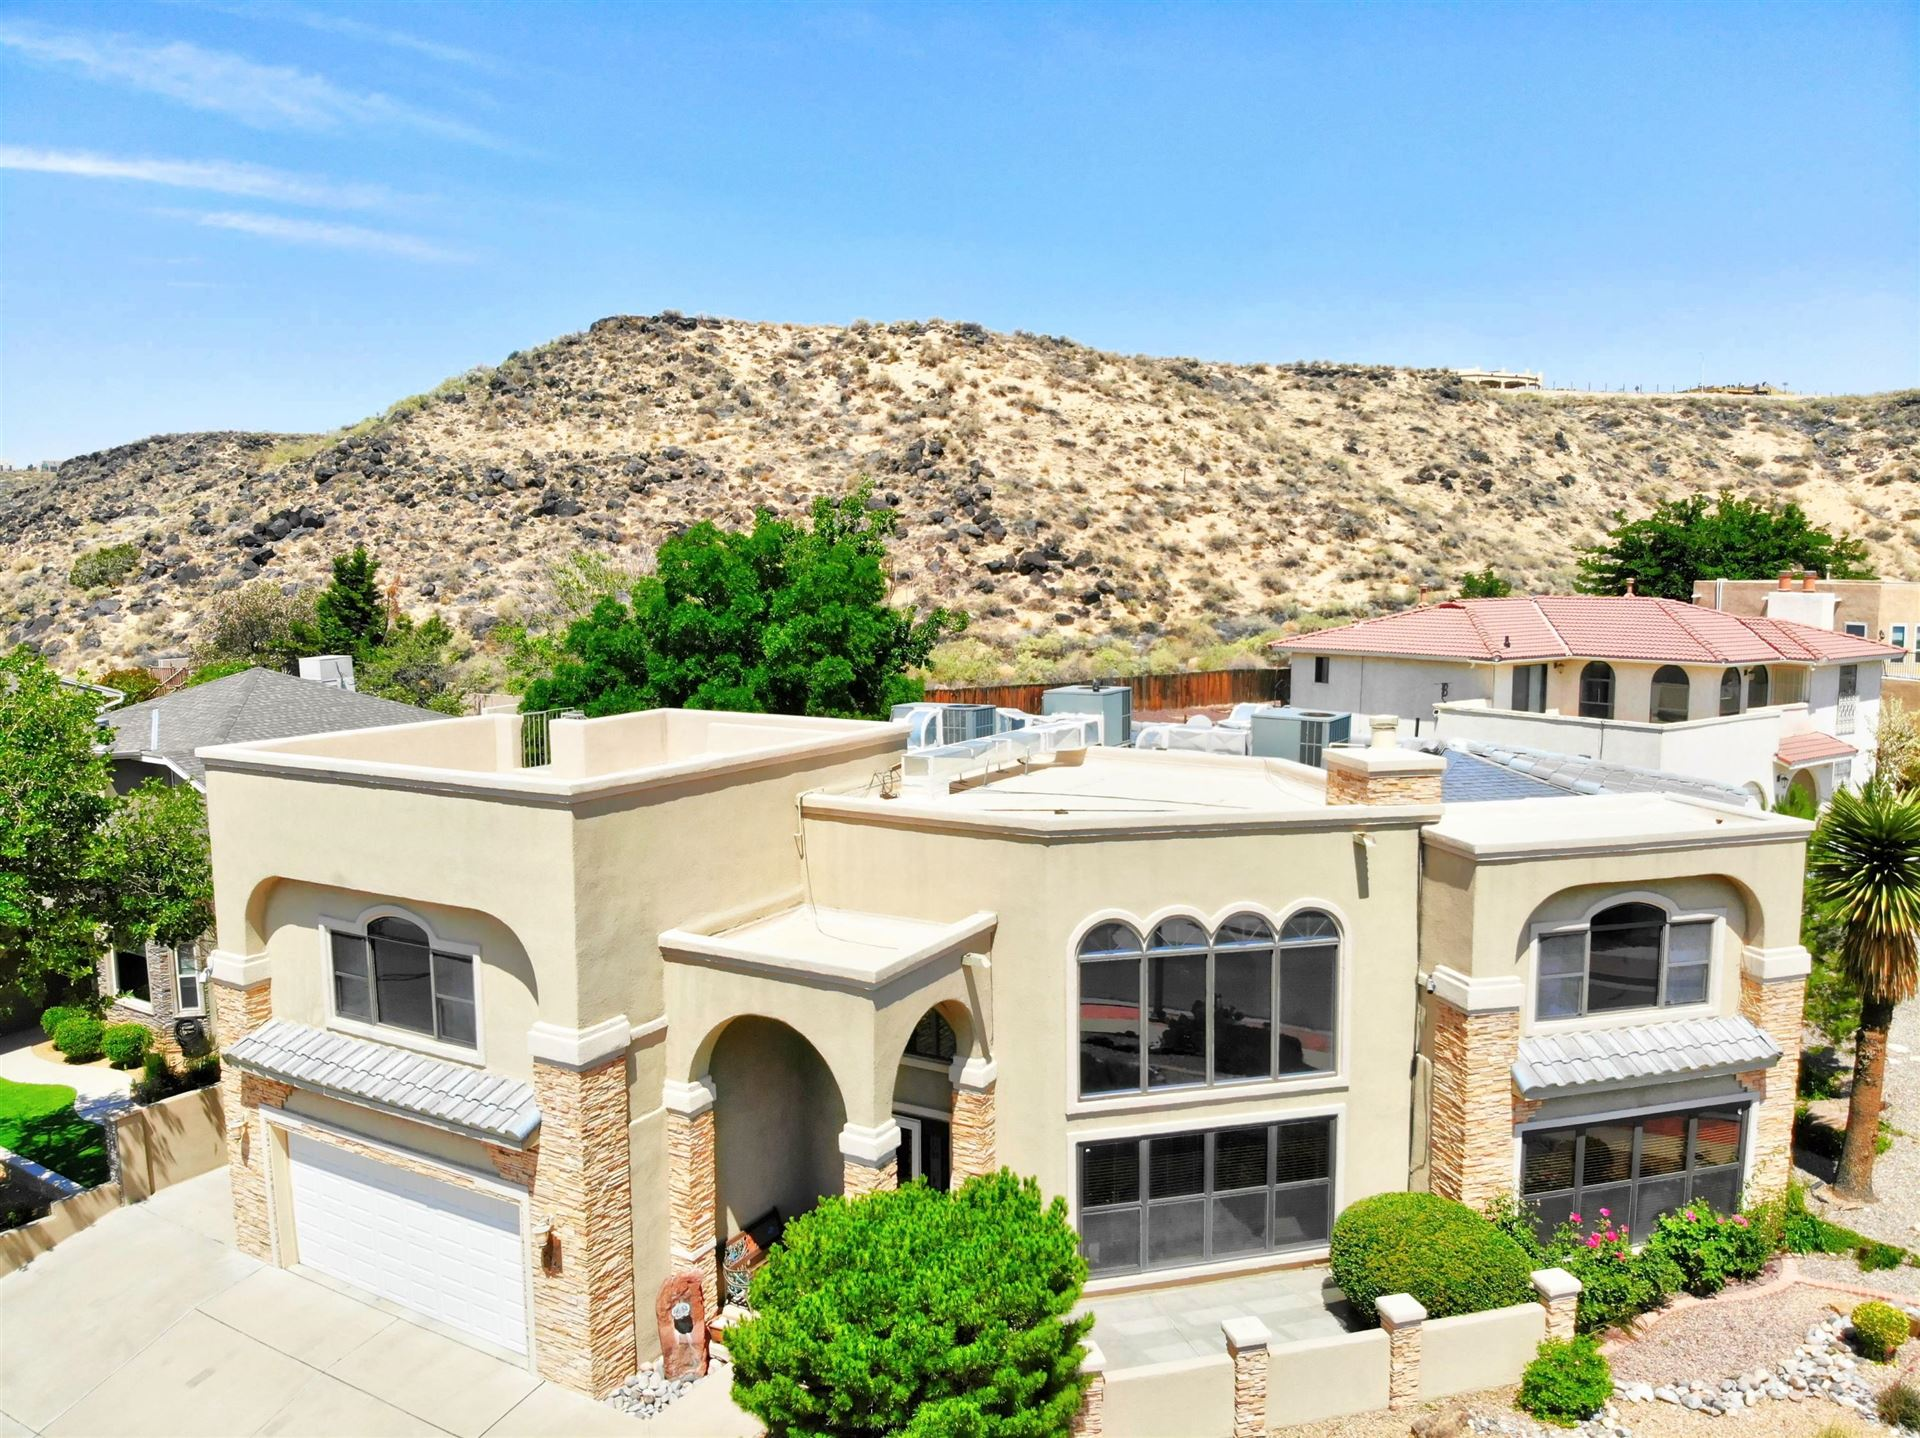 7315 STAGHORN Drive NW, Albuquerque, NM 87120 - MLS#: 995878